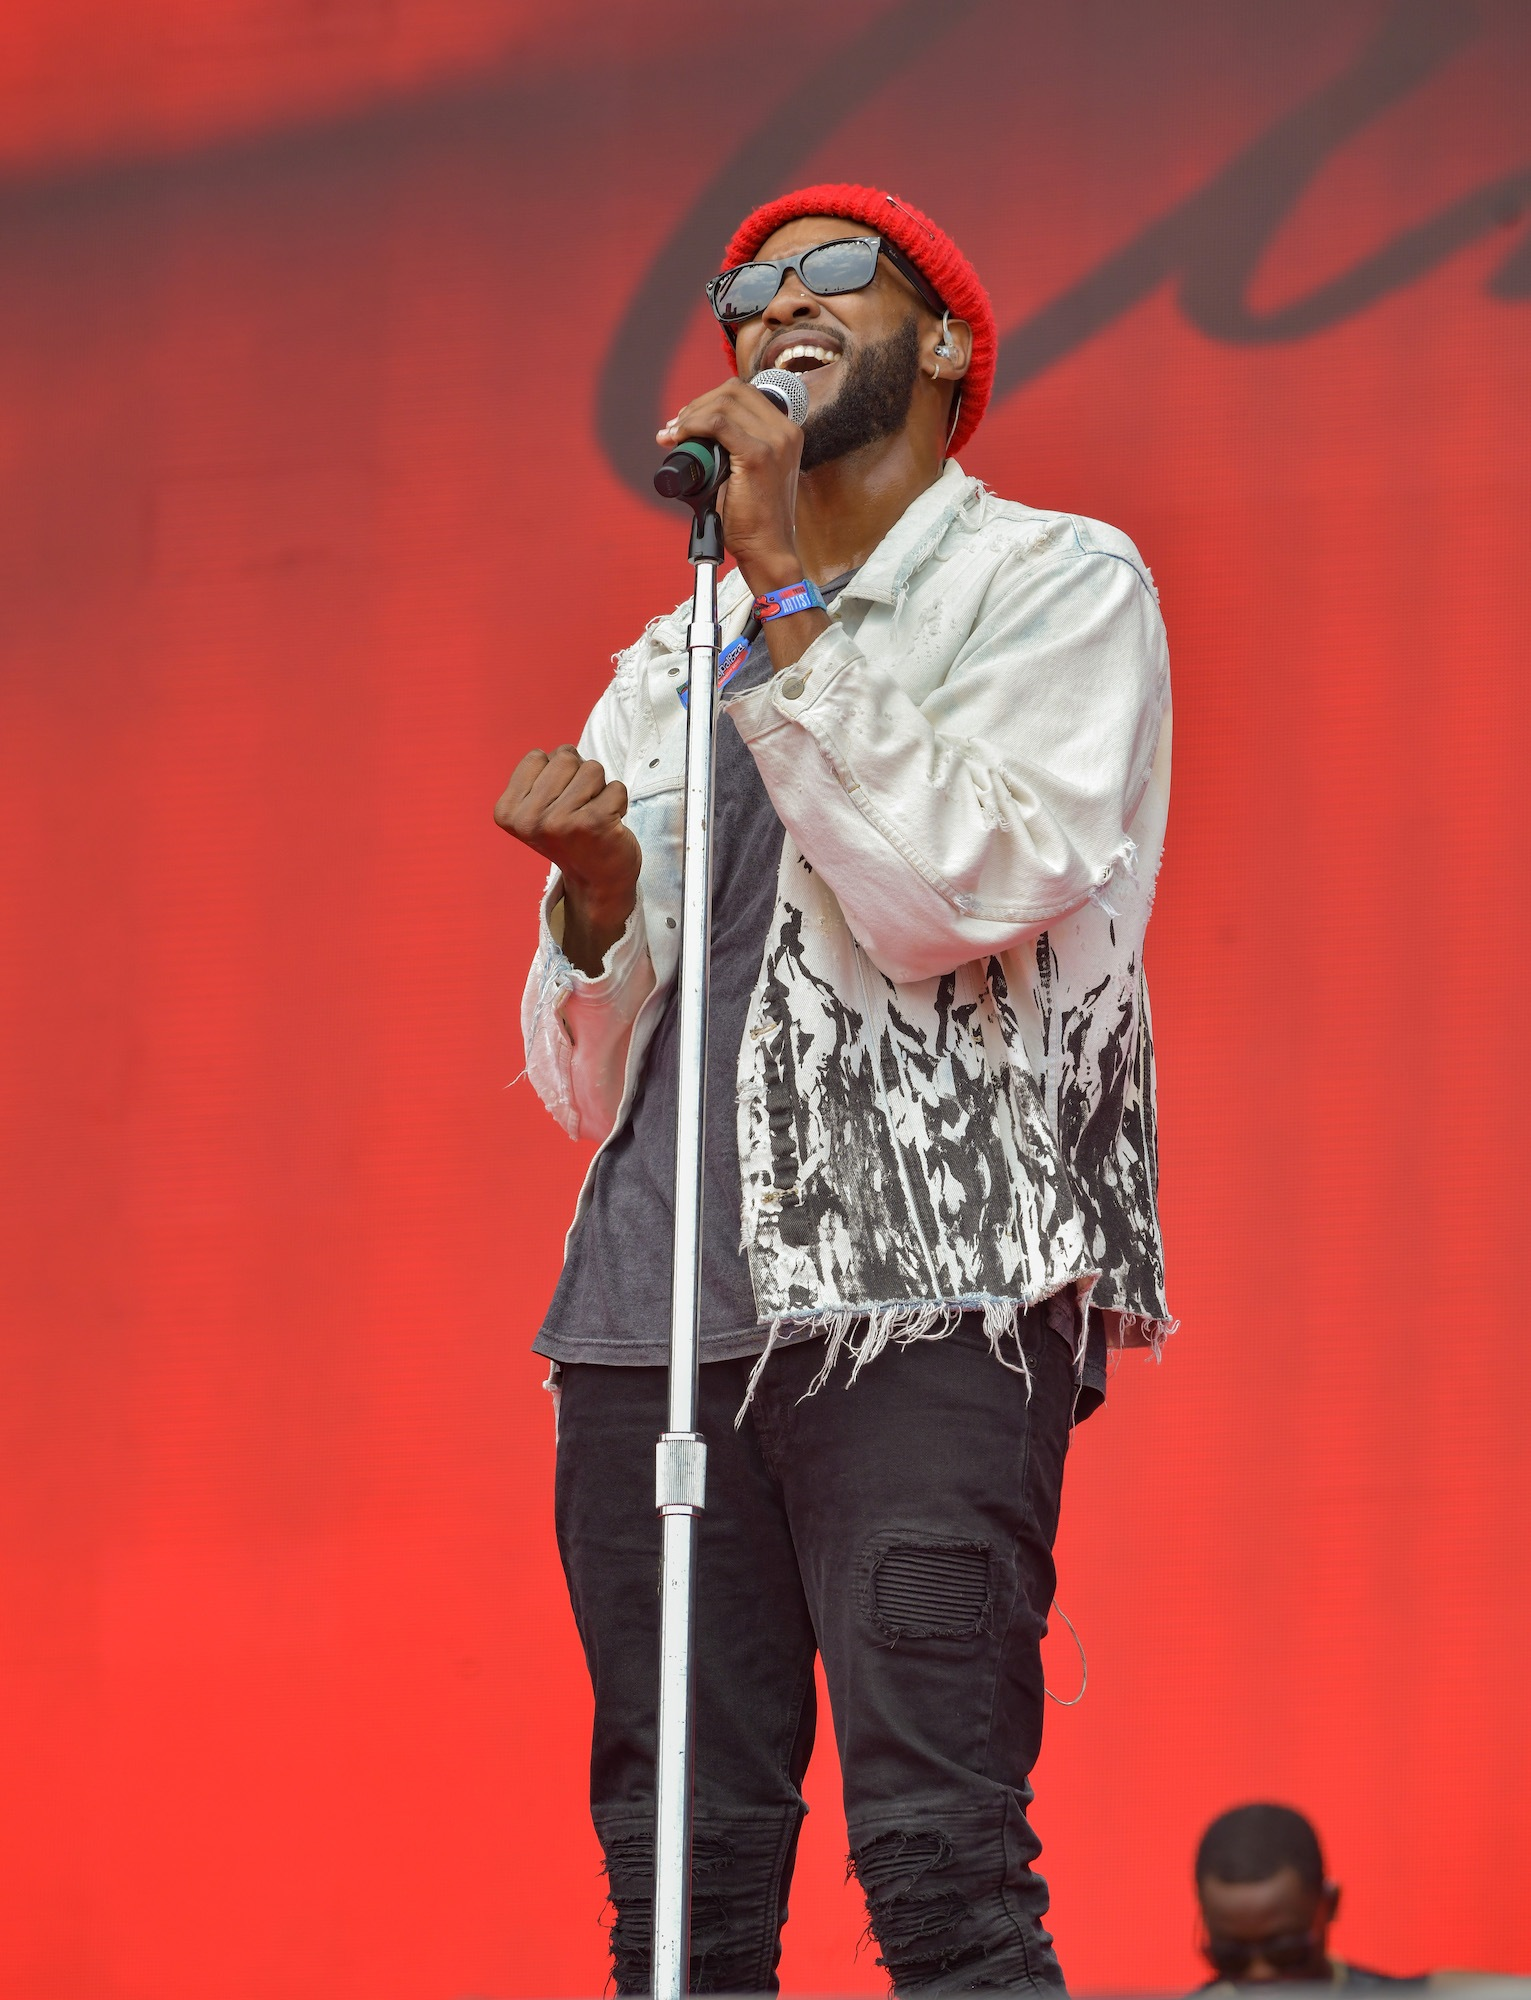 Ant Clemons Live at Lollapalooza [GALLERY] 5